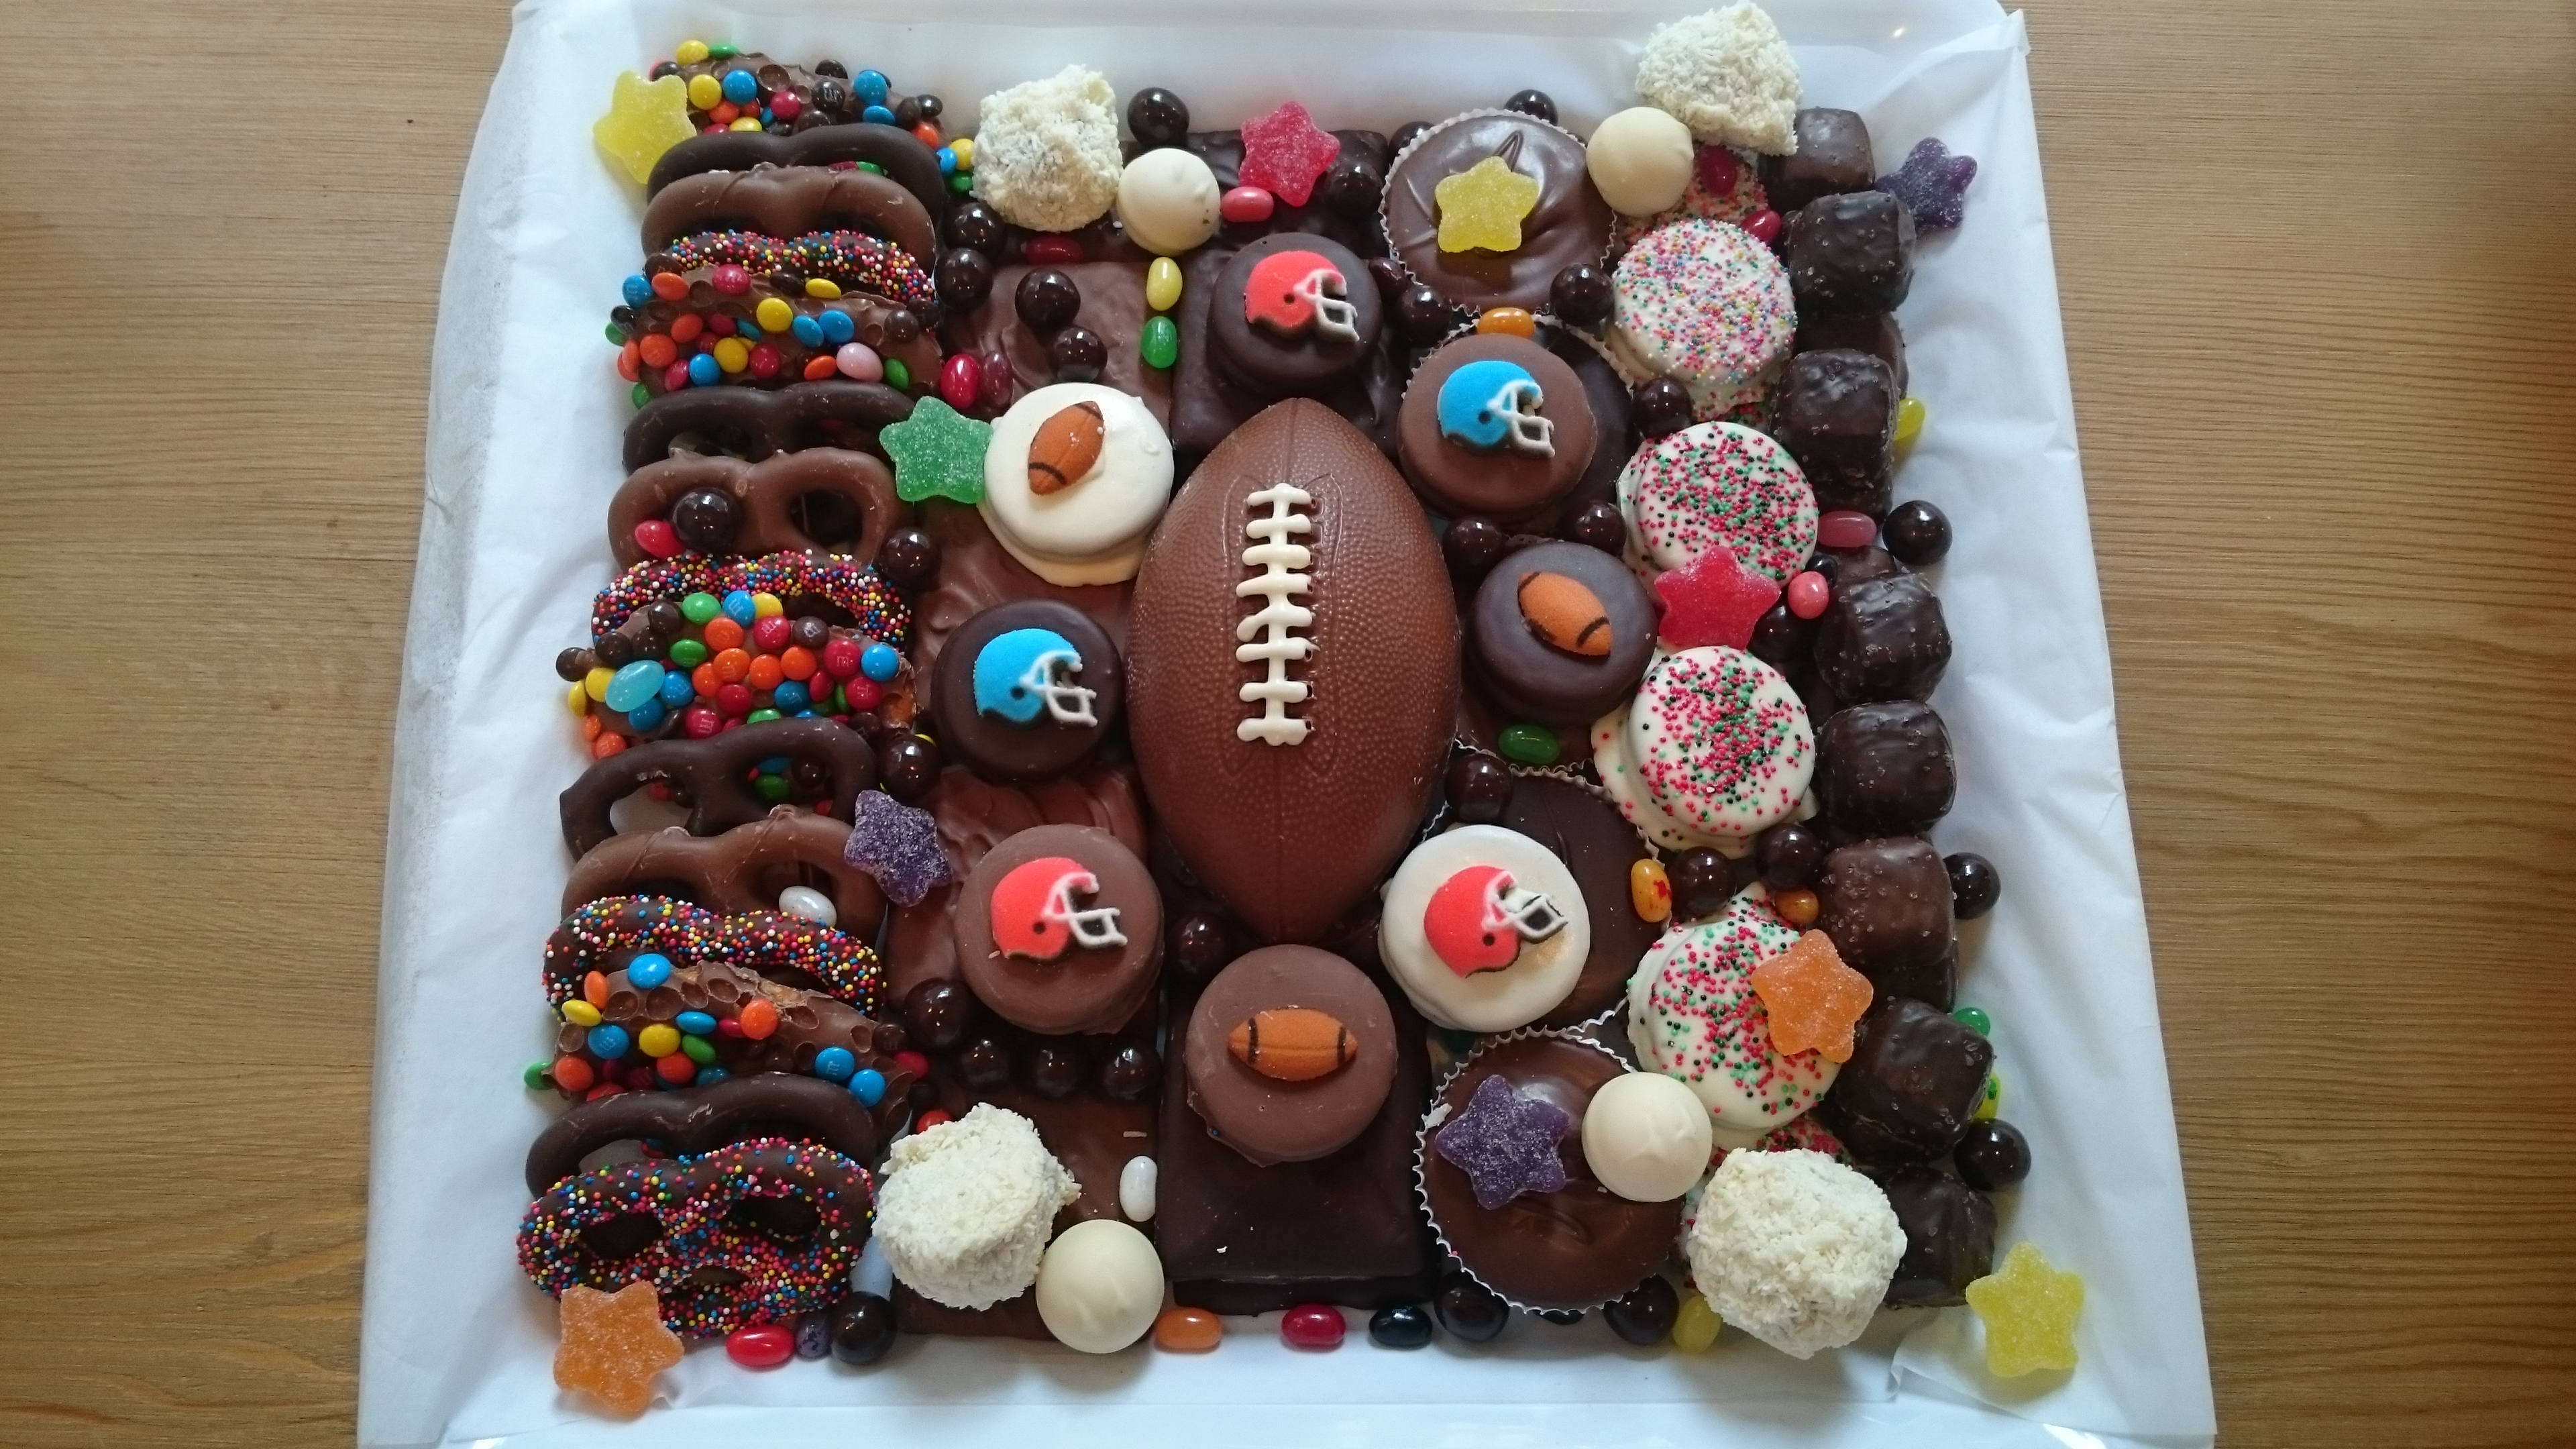 Score big with a Superbowl party platter from Chocolate Works ...